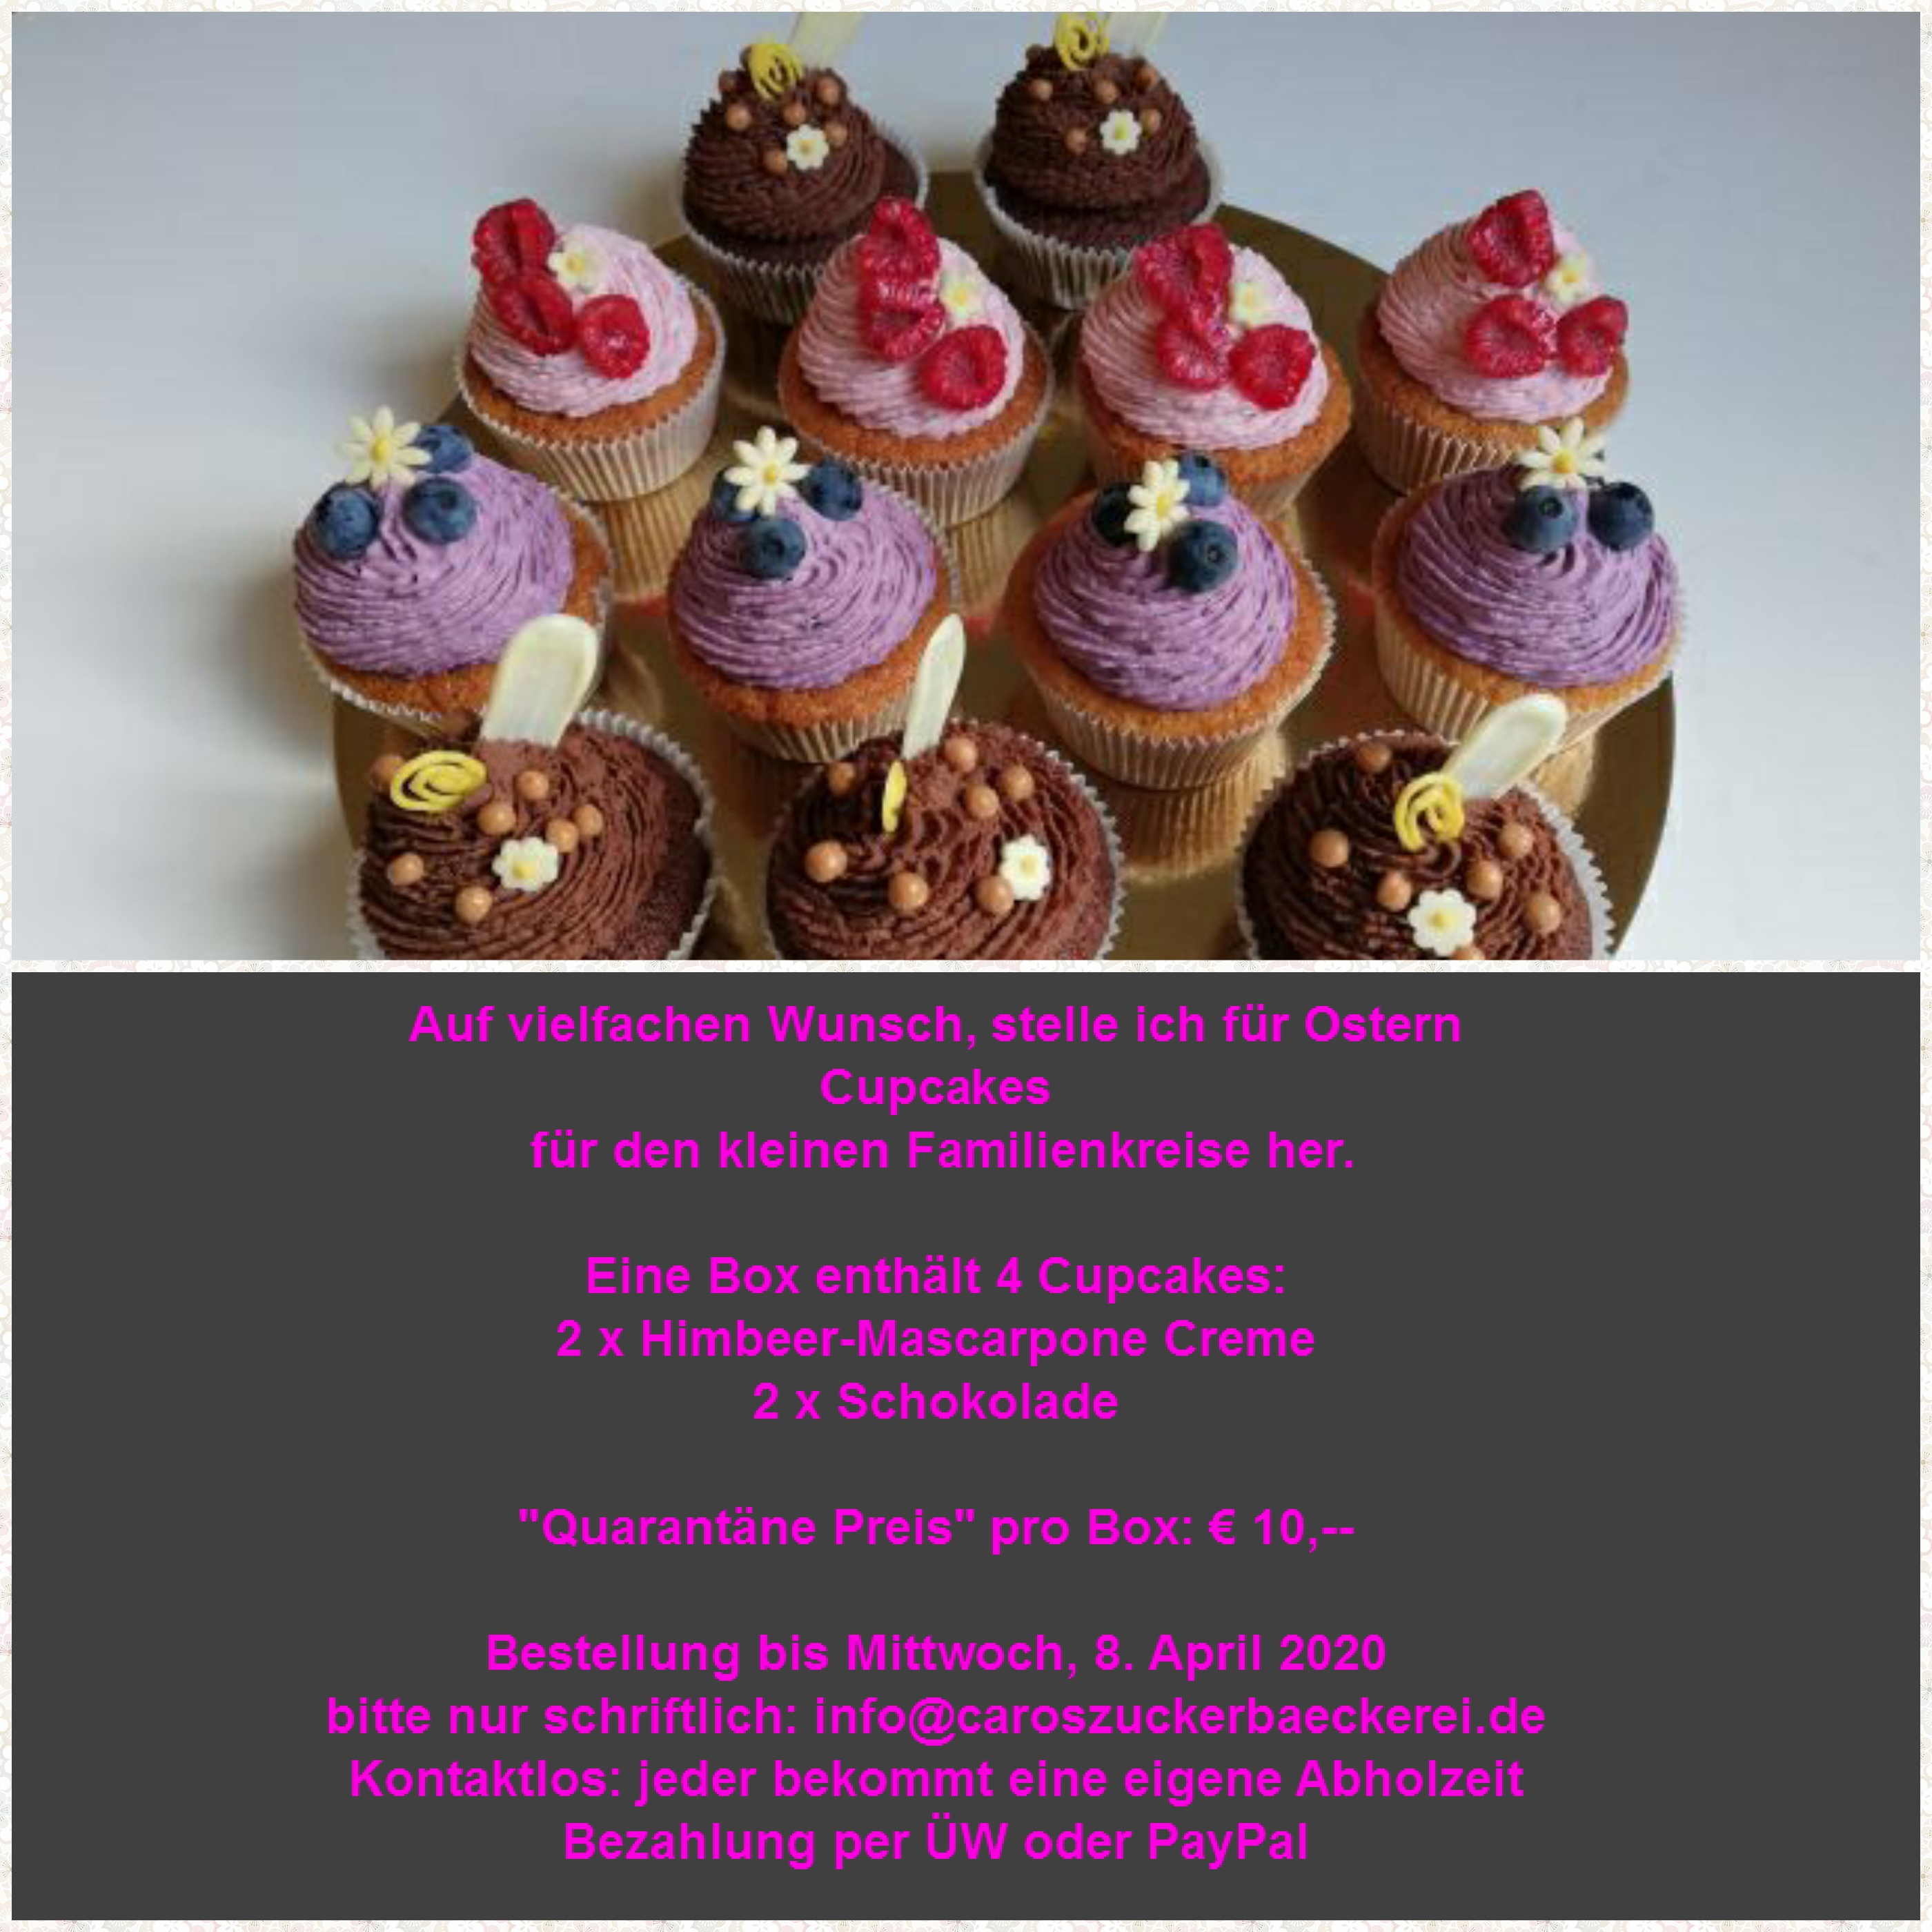 Cupcakes_Aktion Ostern 2020_Text